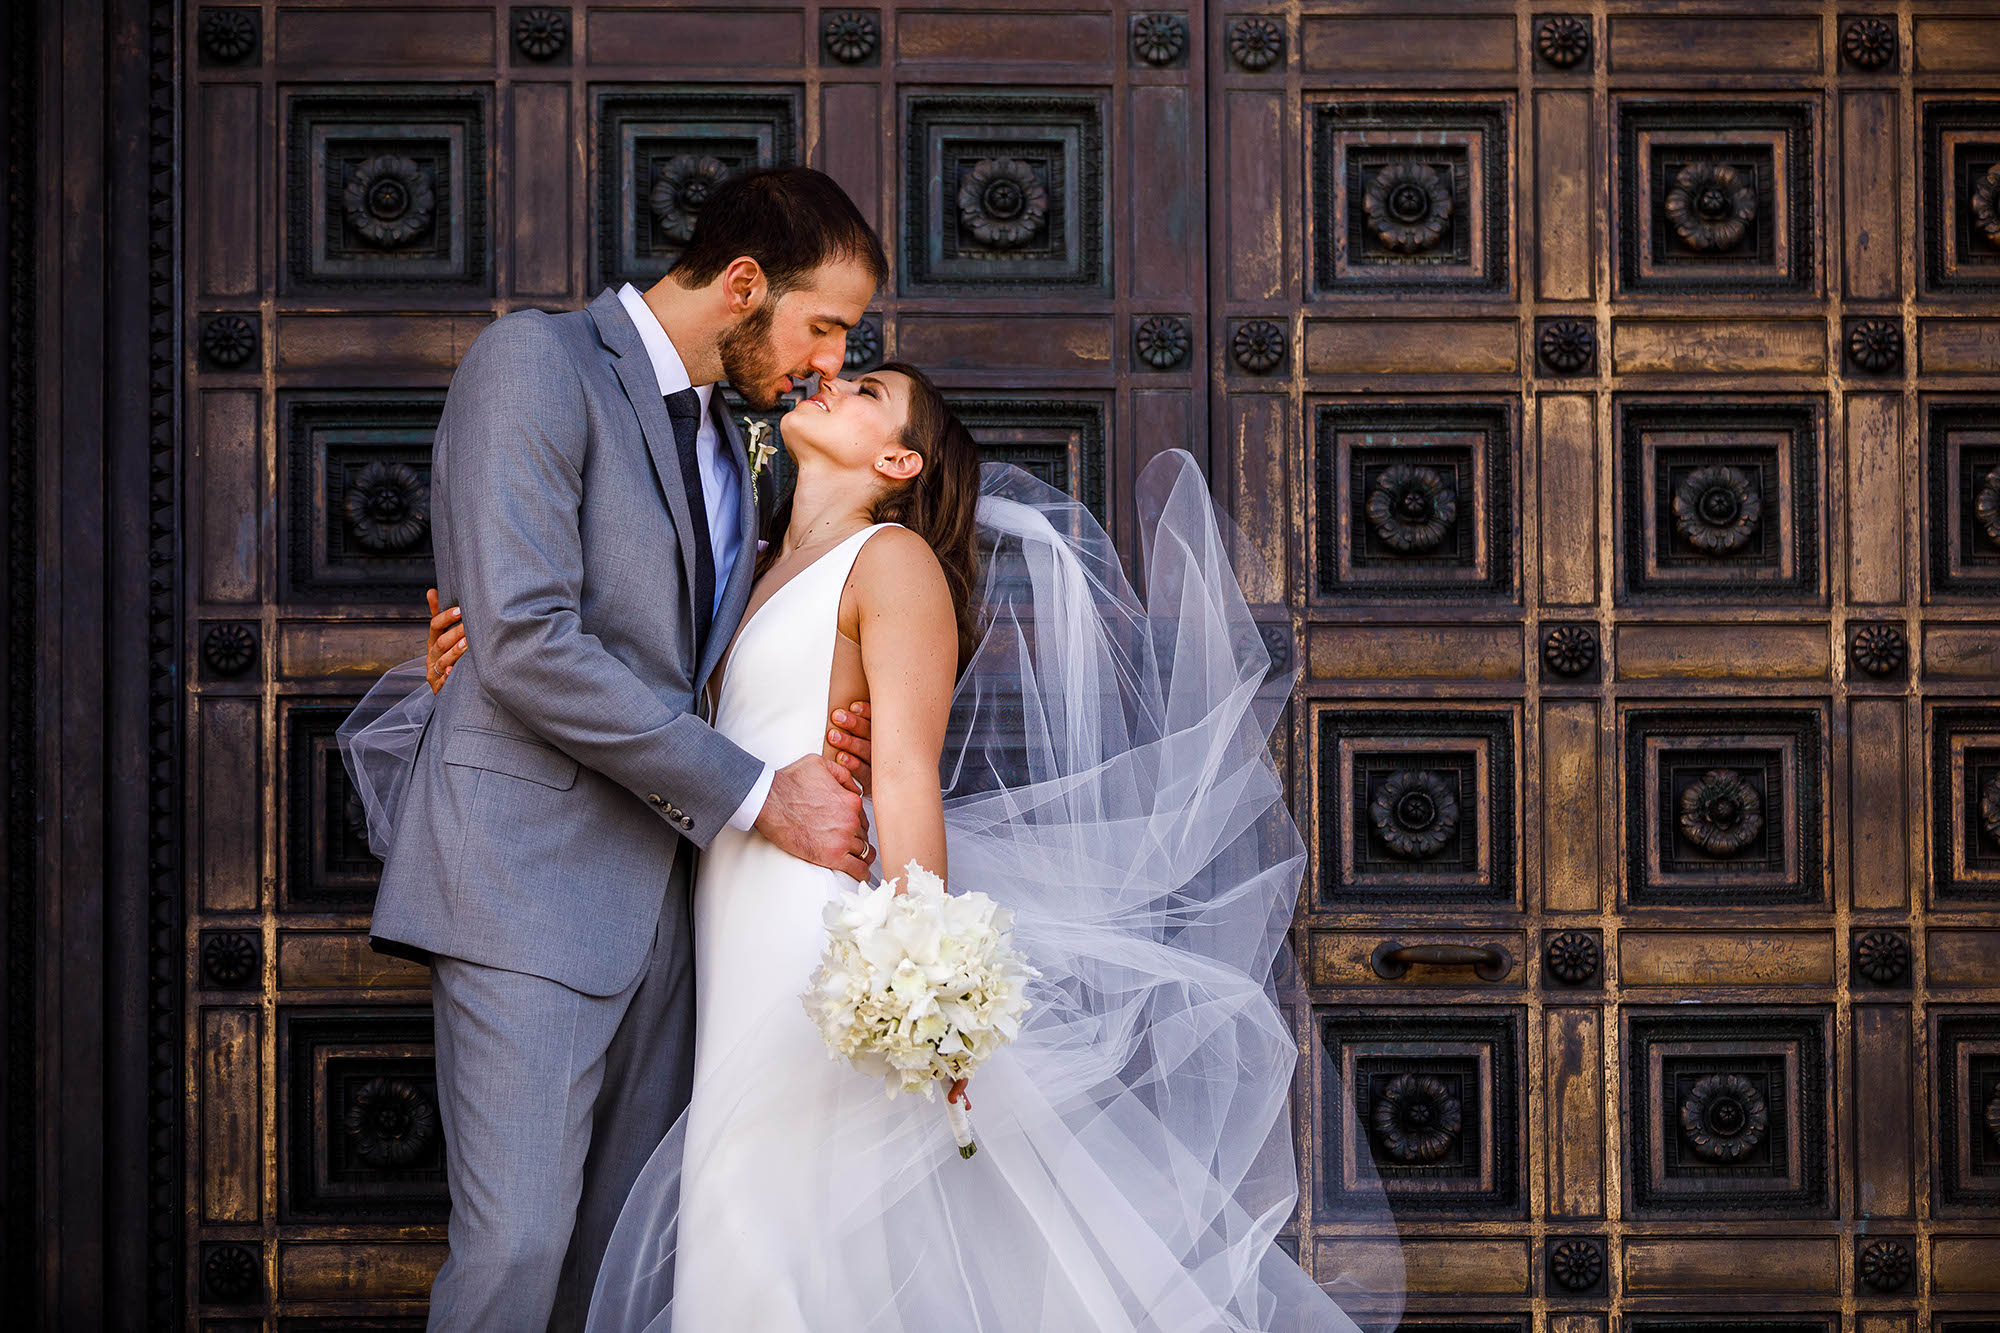 We had just moments to create these bridal portraits for this bride and groom on their wedding day. We stopped by the McKinley National Memorial in Canton, Ohio on our way to the reception and posed the couple in front of the massive wooden doors. We told the groom to hold his bride tight and take a moment to enjoy this time together and we were able to create this image for them.